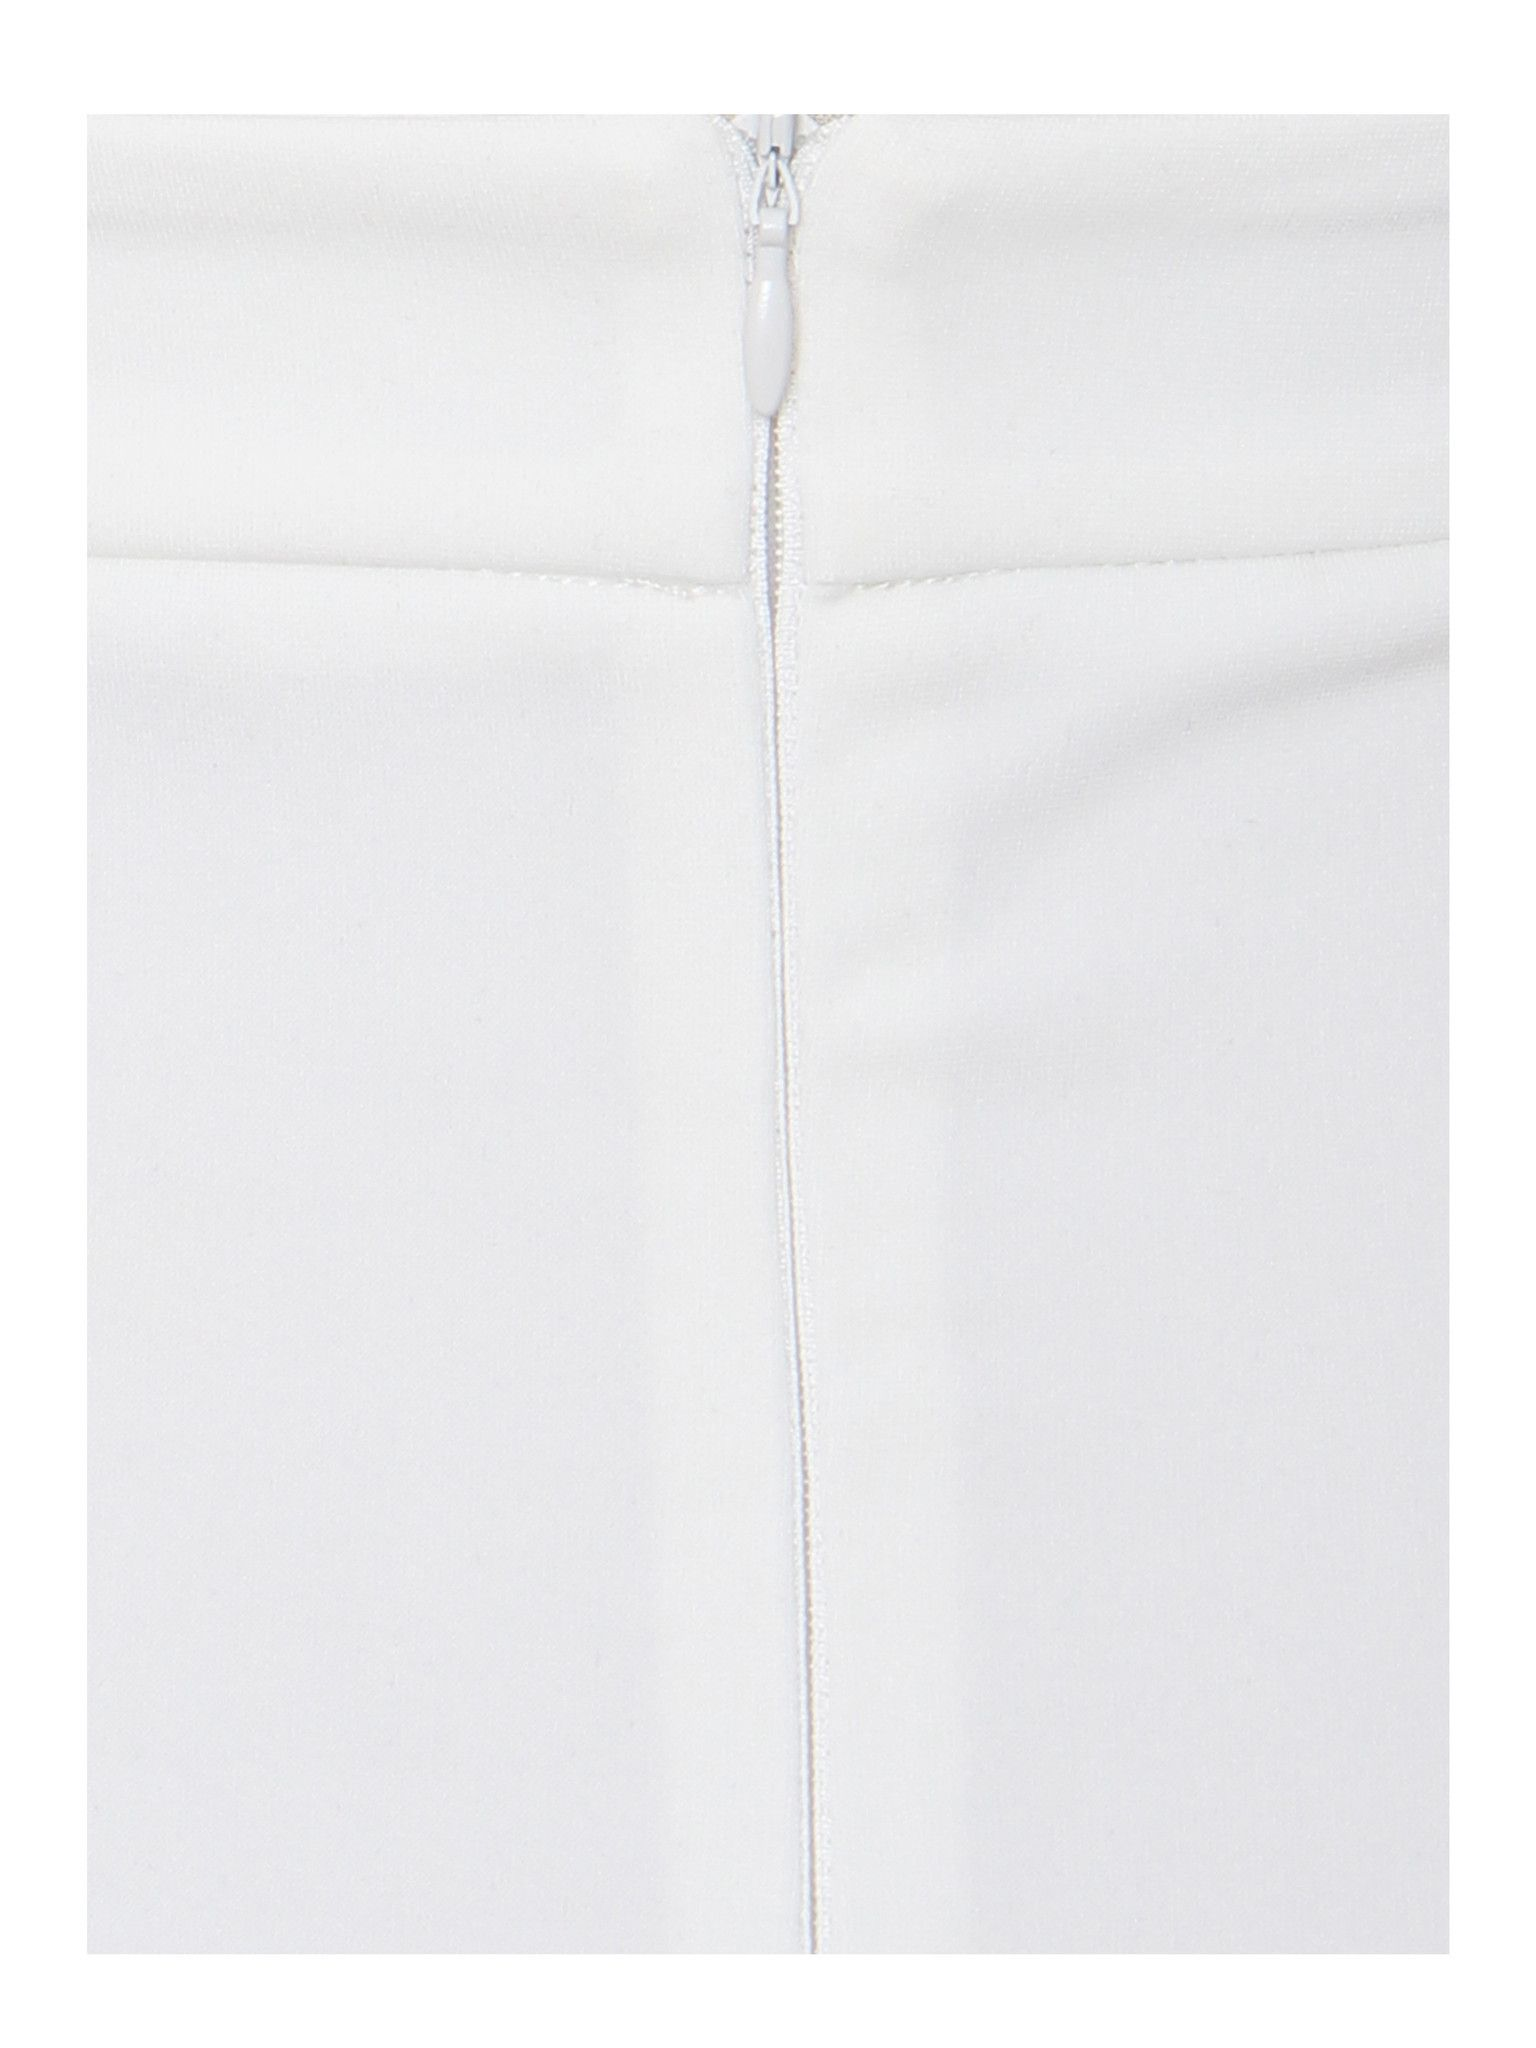 b8ef173c12 This elegant white bodycon dress is perfect for the most upscale events. It showcases  flowy